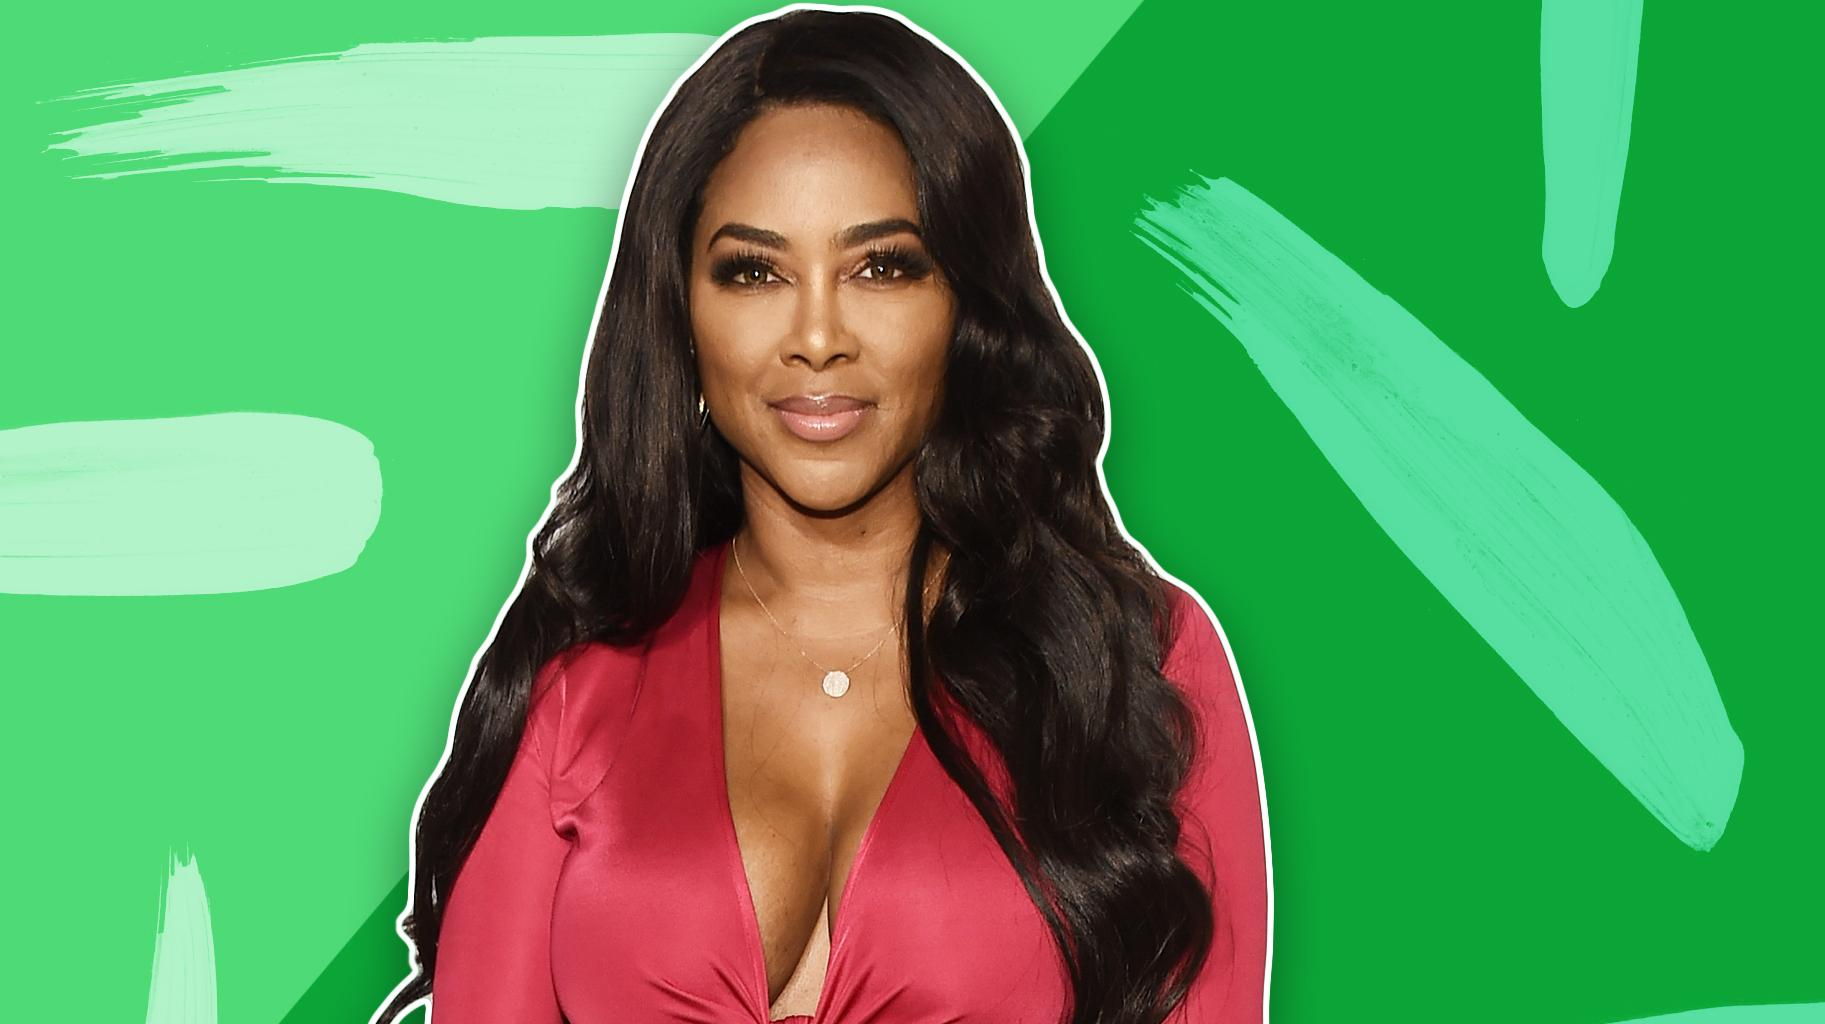 Kenya Moore Impresses Fans With Video From The Bahamas